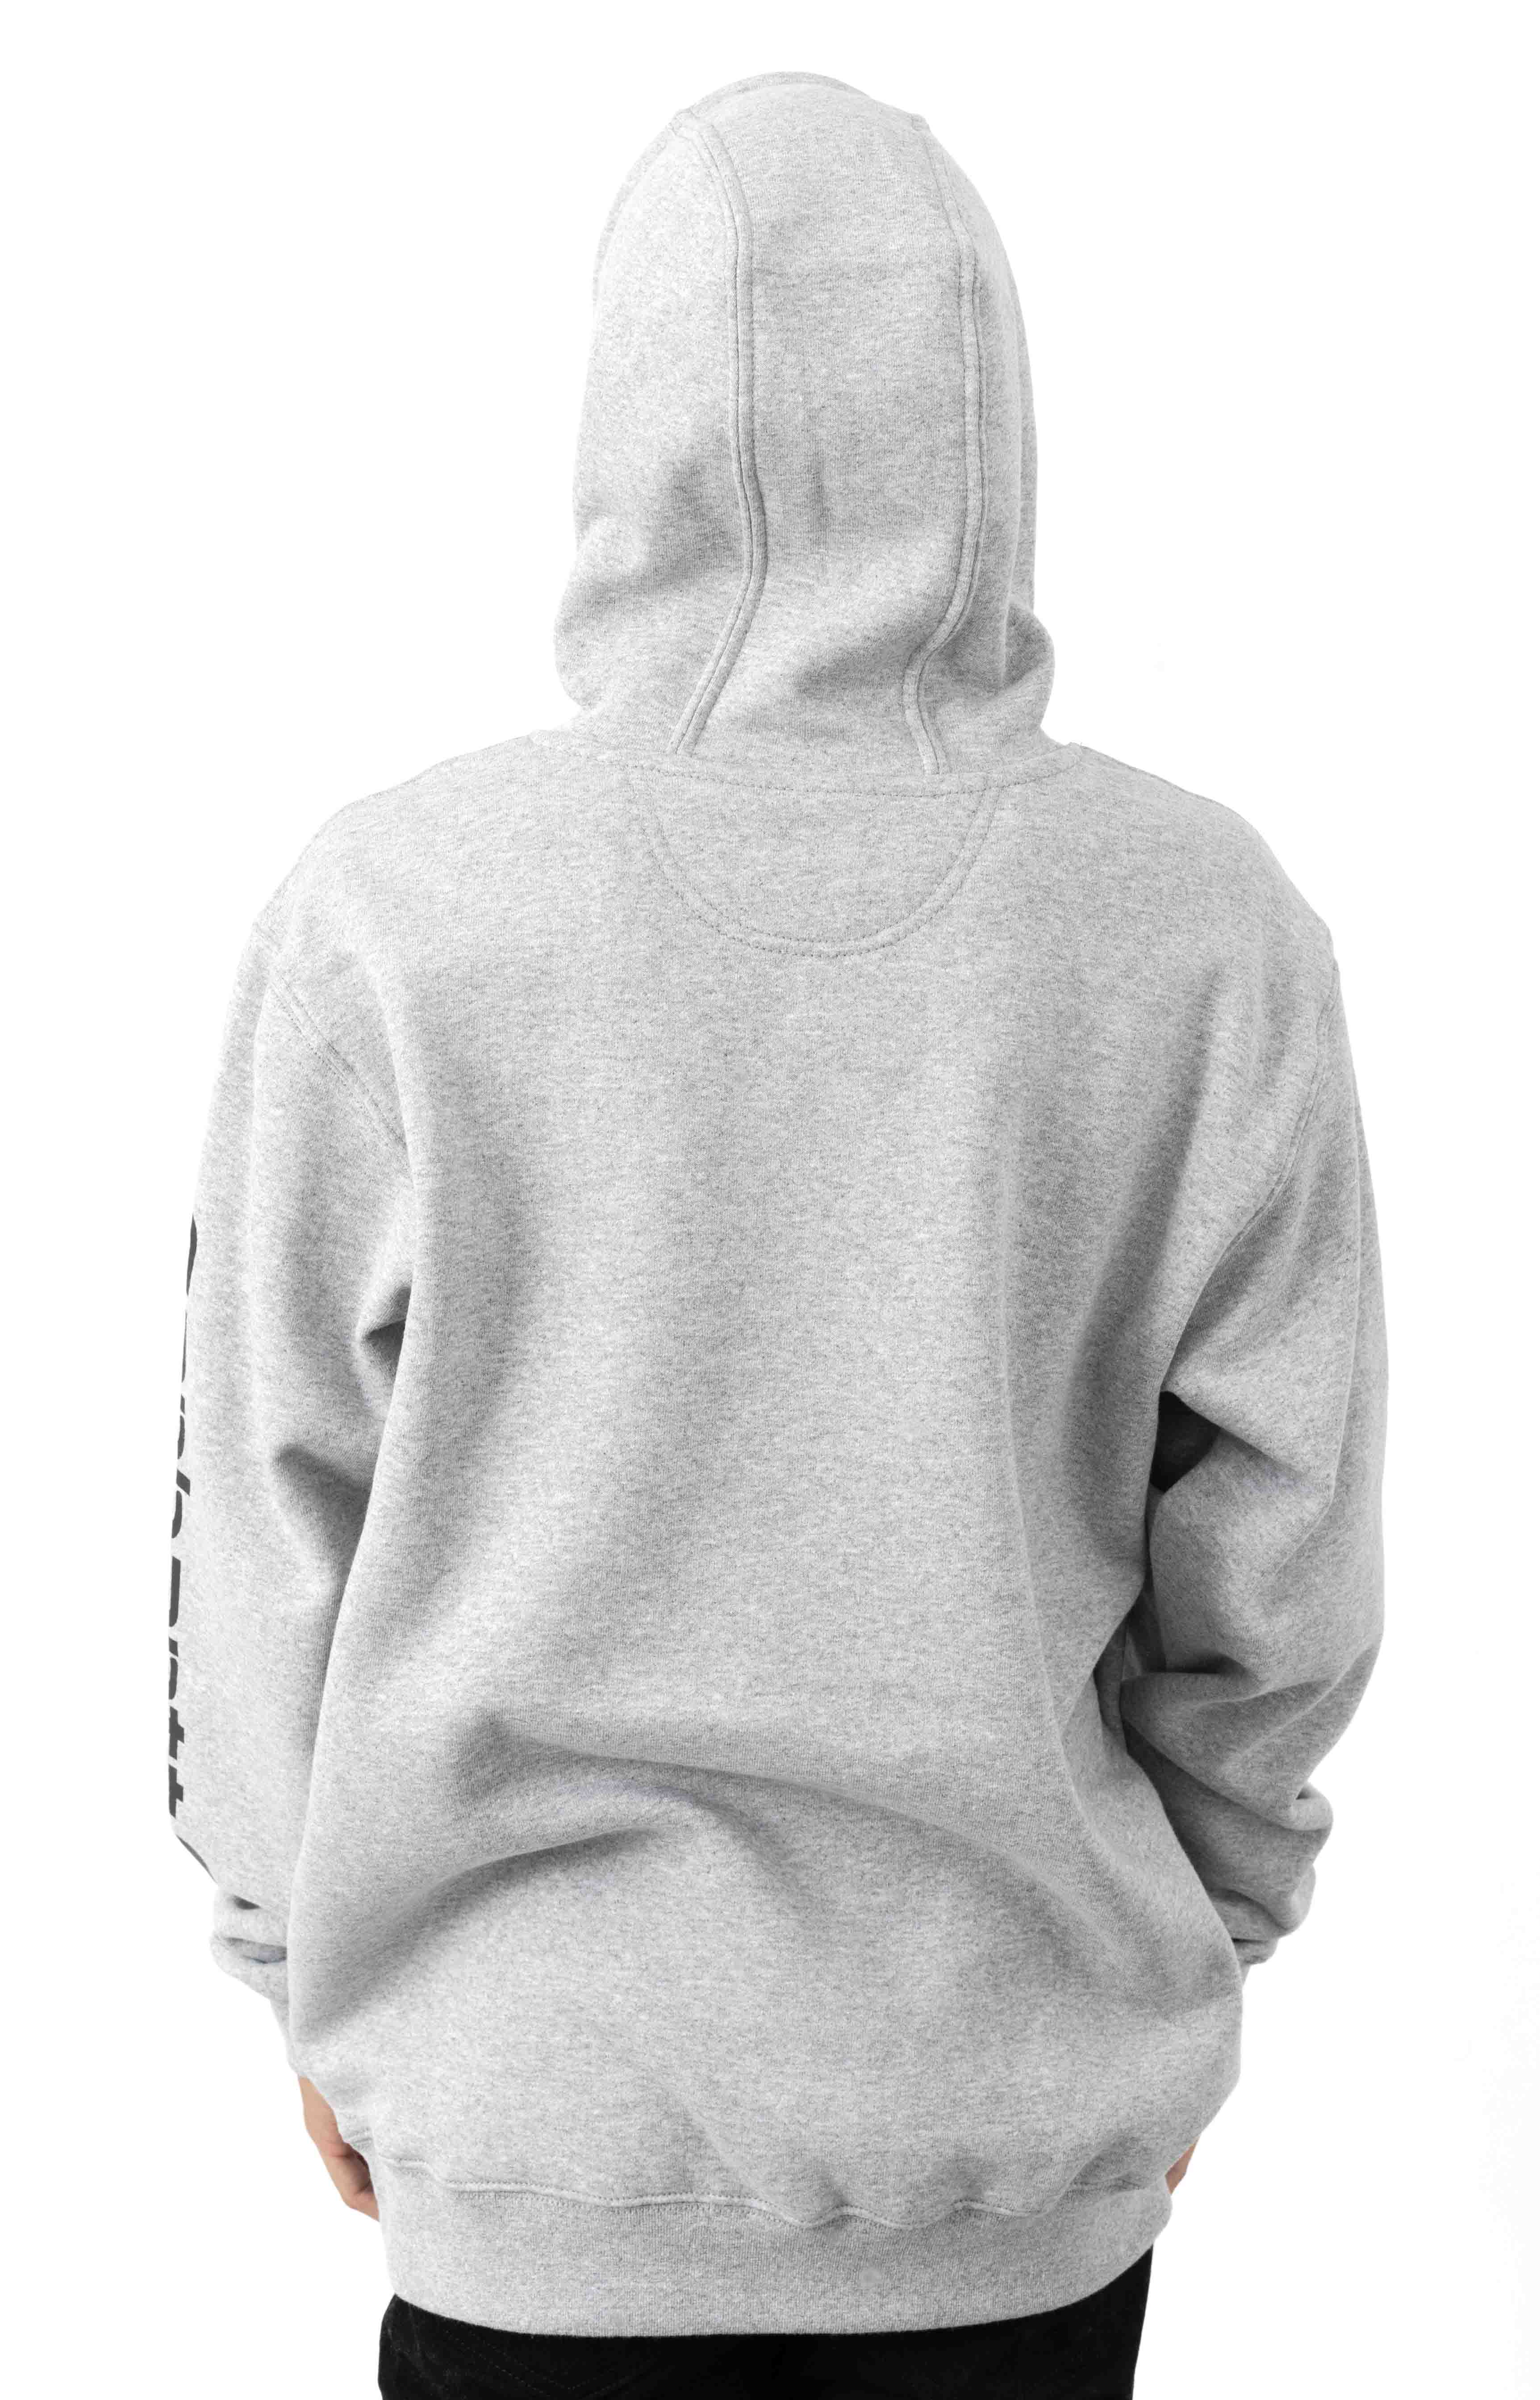 (K288) MW Signature Sleeve Logo Pullover Hoodie - Heather Grey/Black 3